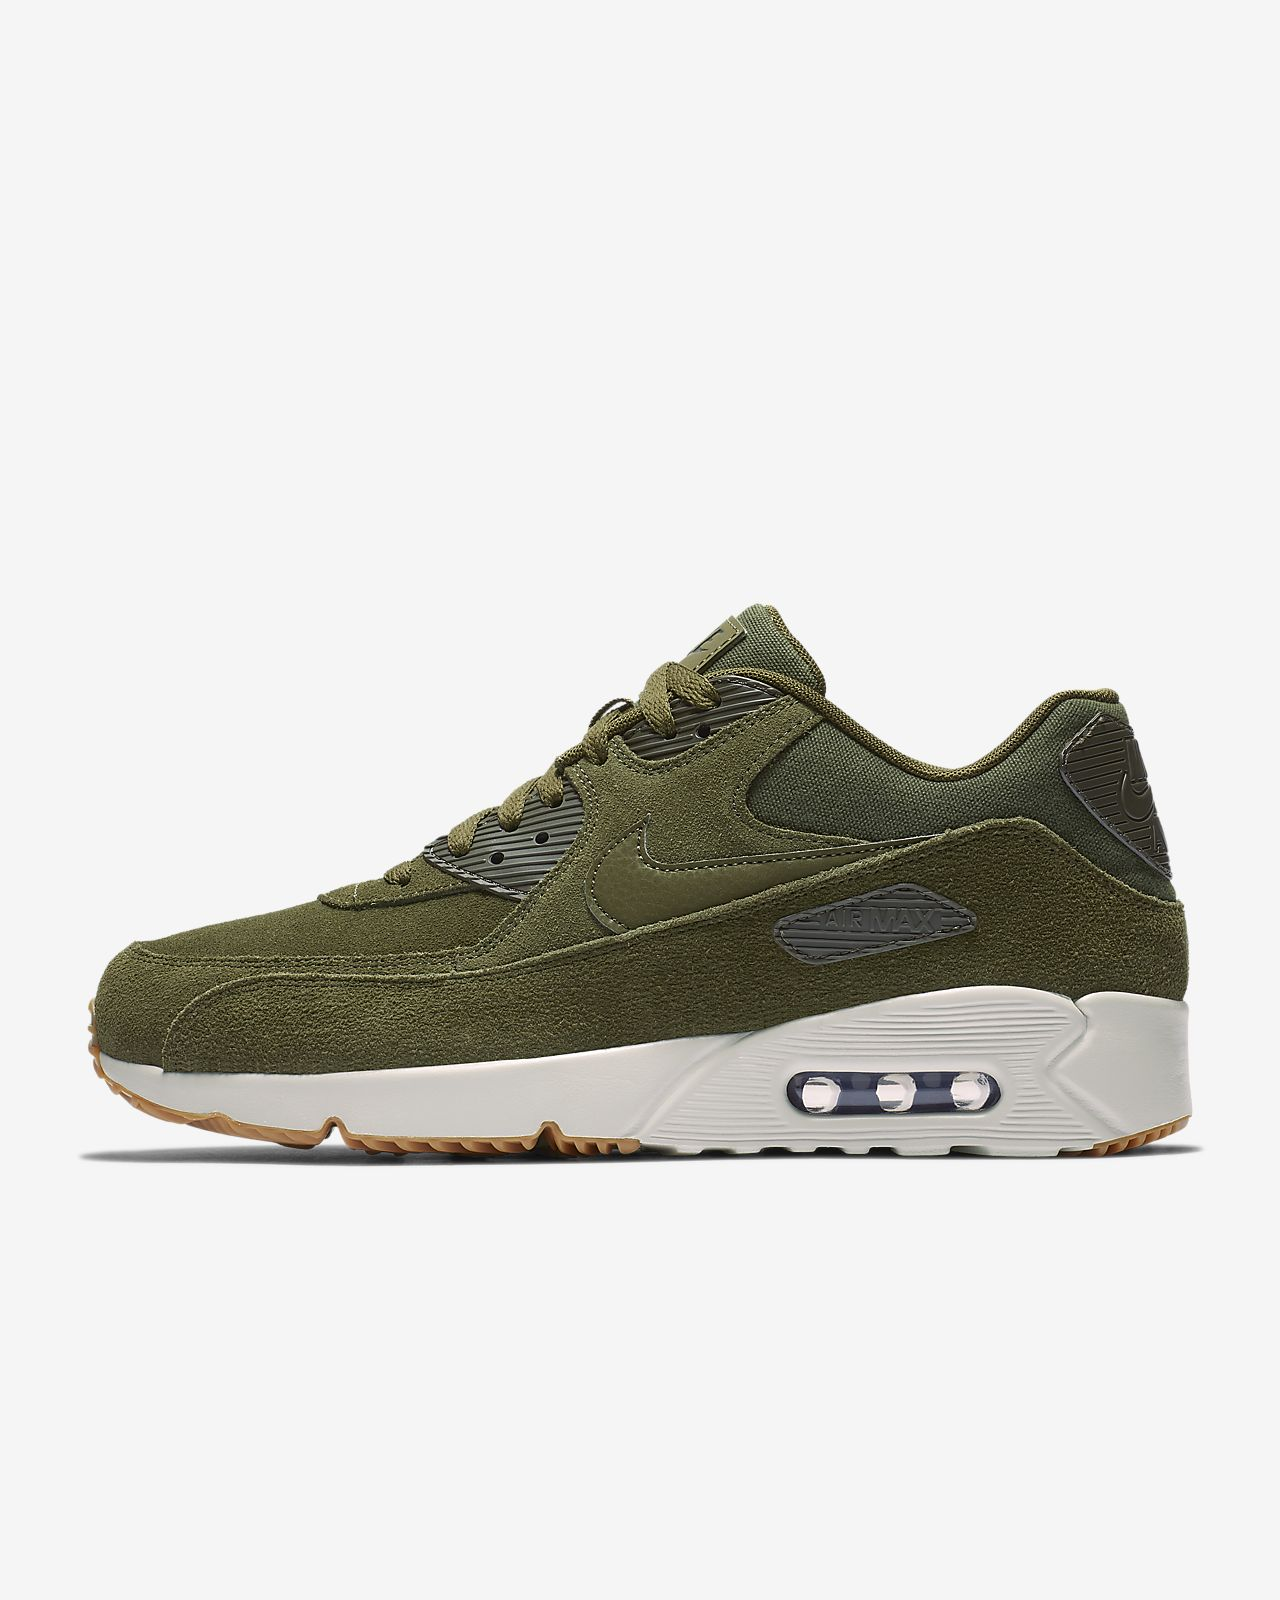 Low Resolution Nike Air Max 90 Ultra 2.0 Men s Shoe Nike Air Max 90 Ultra  2.0 Men s Shoe 3346feafa